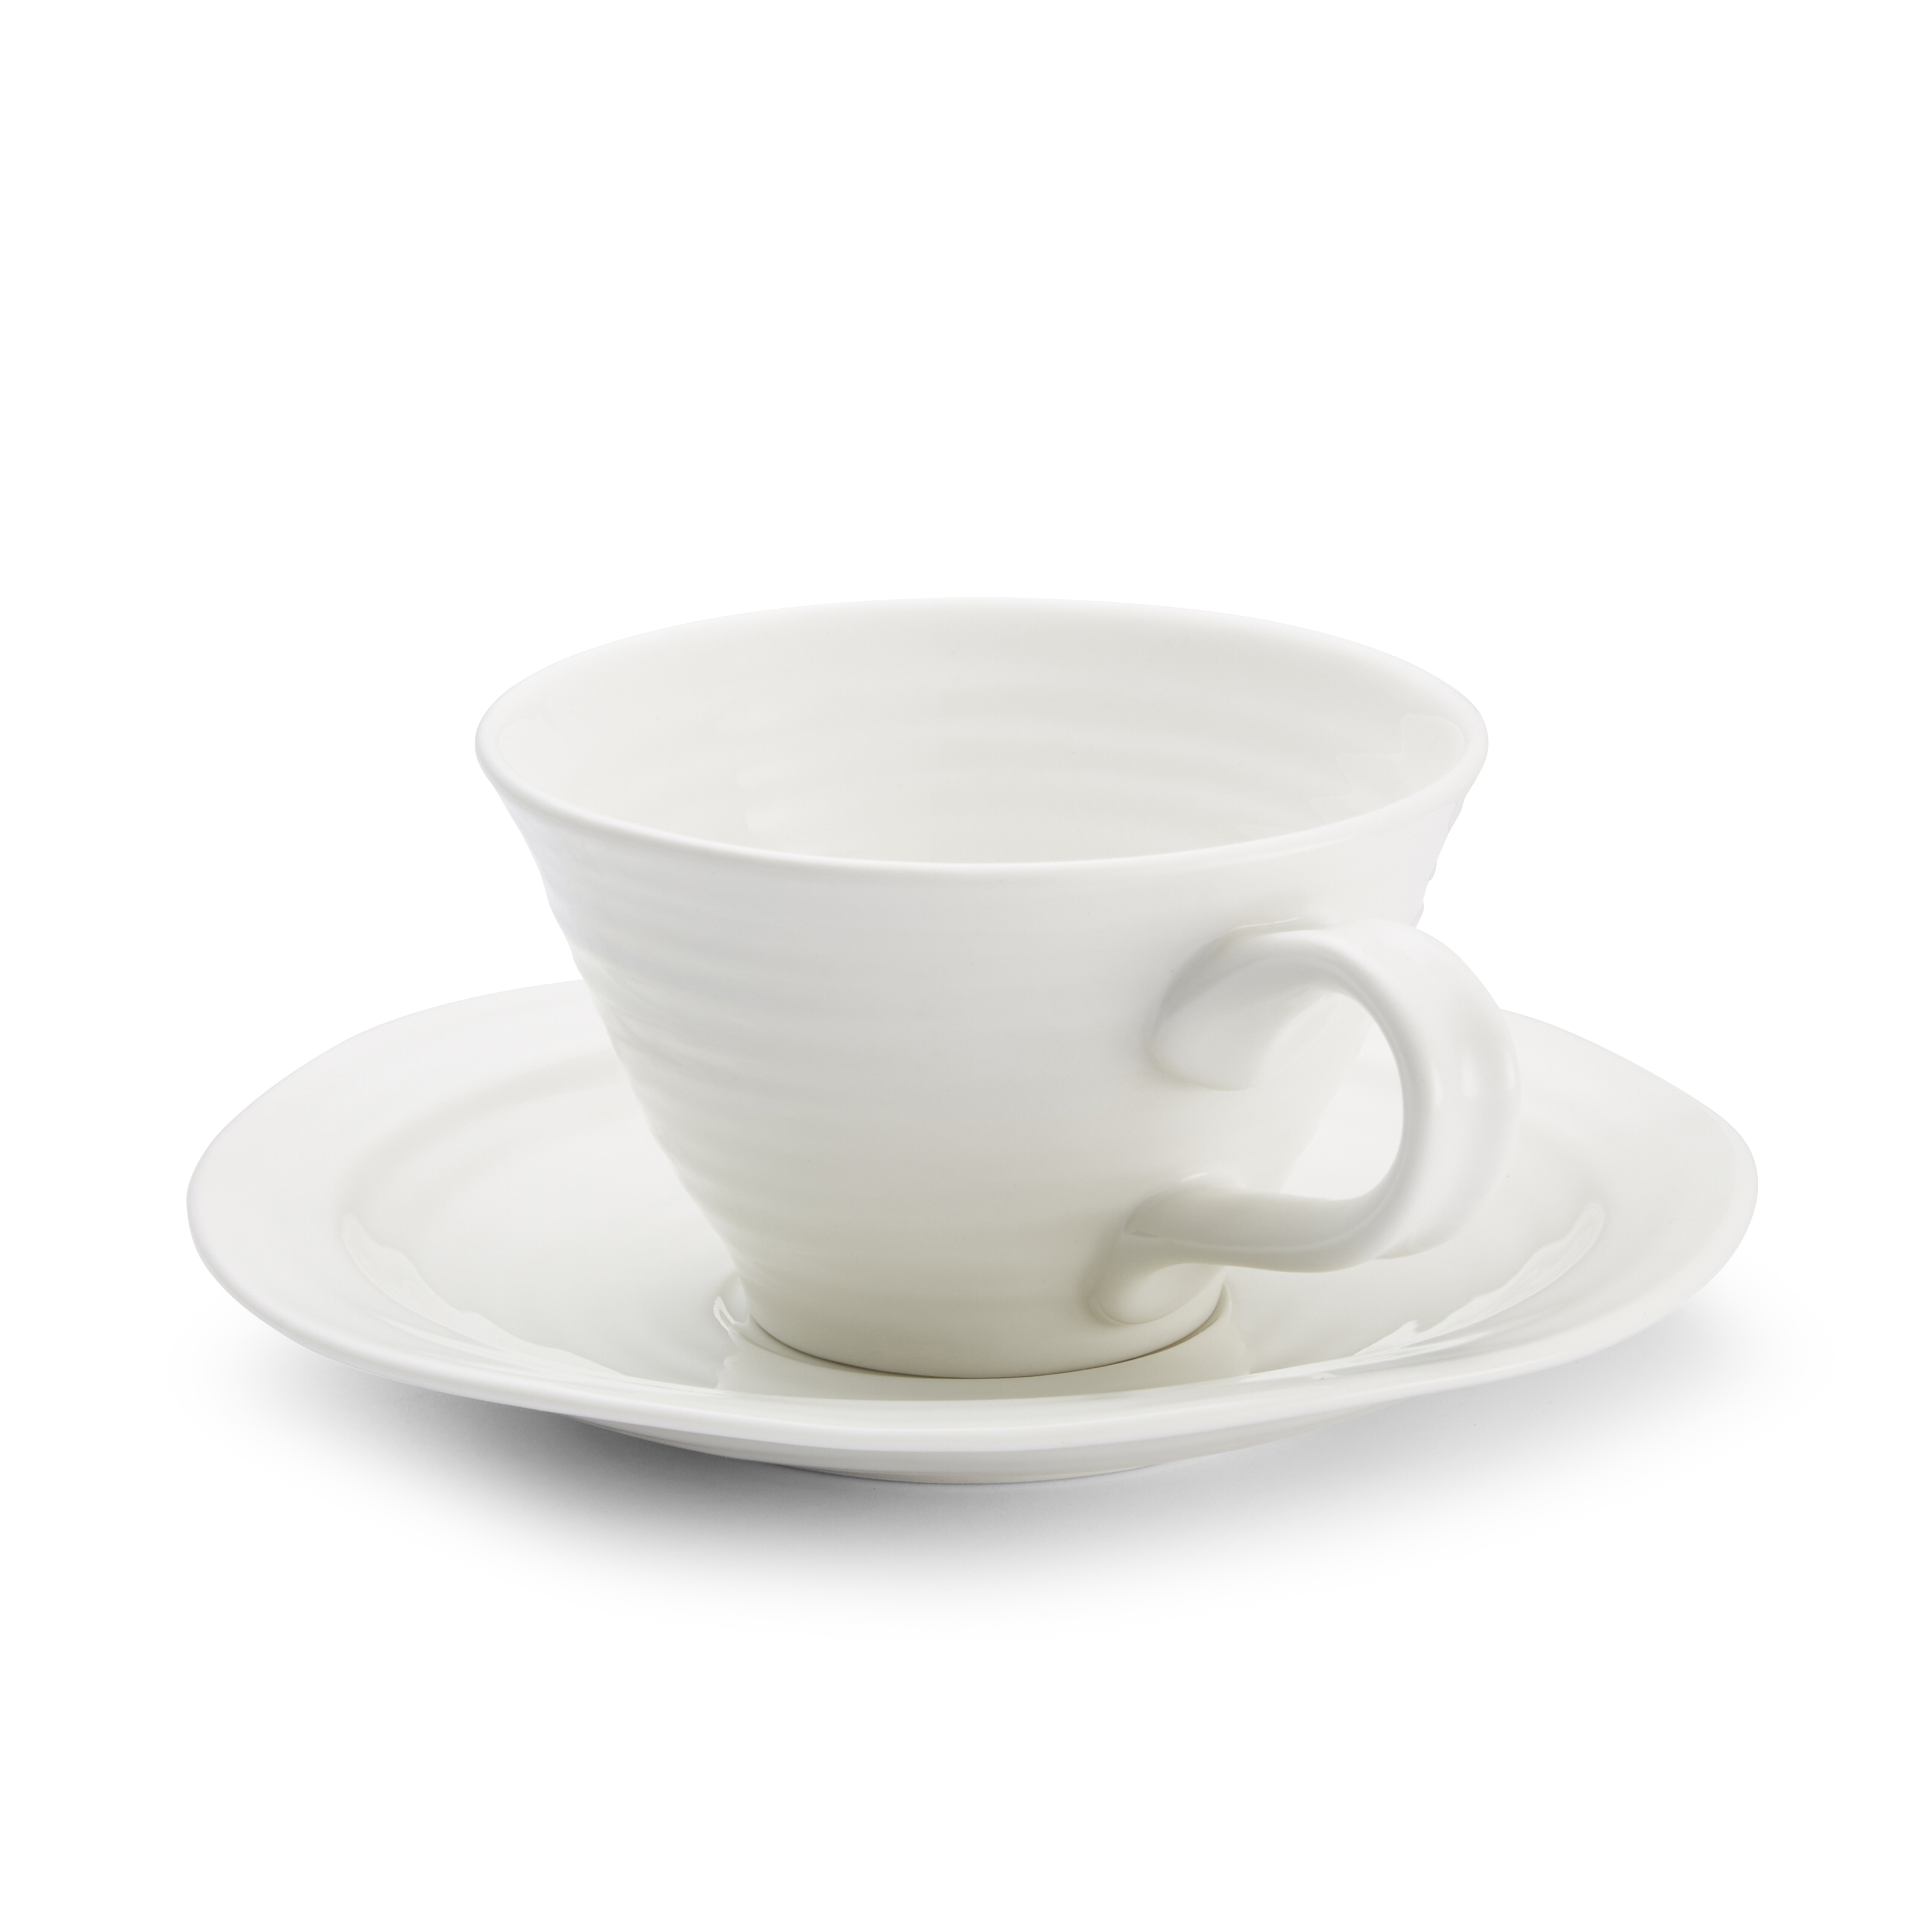 Portmeirion Sophie Conran White Set of 4 Teacups and Saucers image number 1